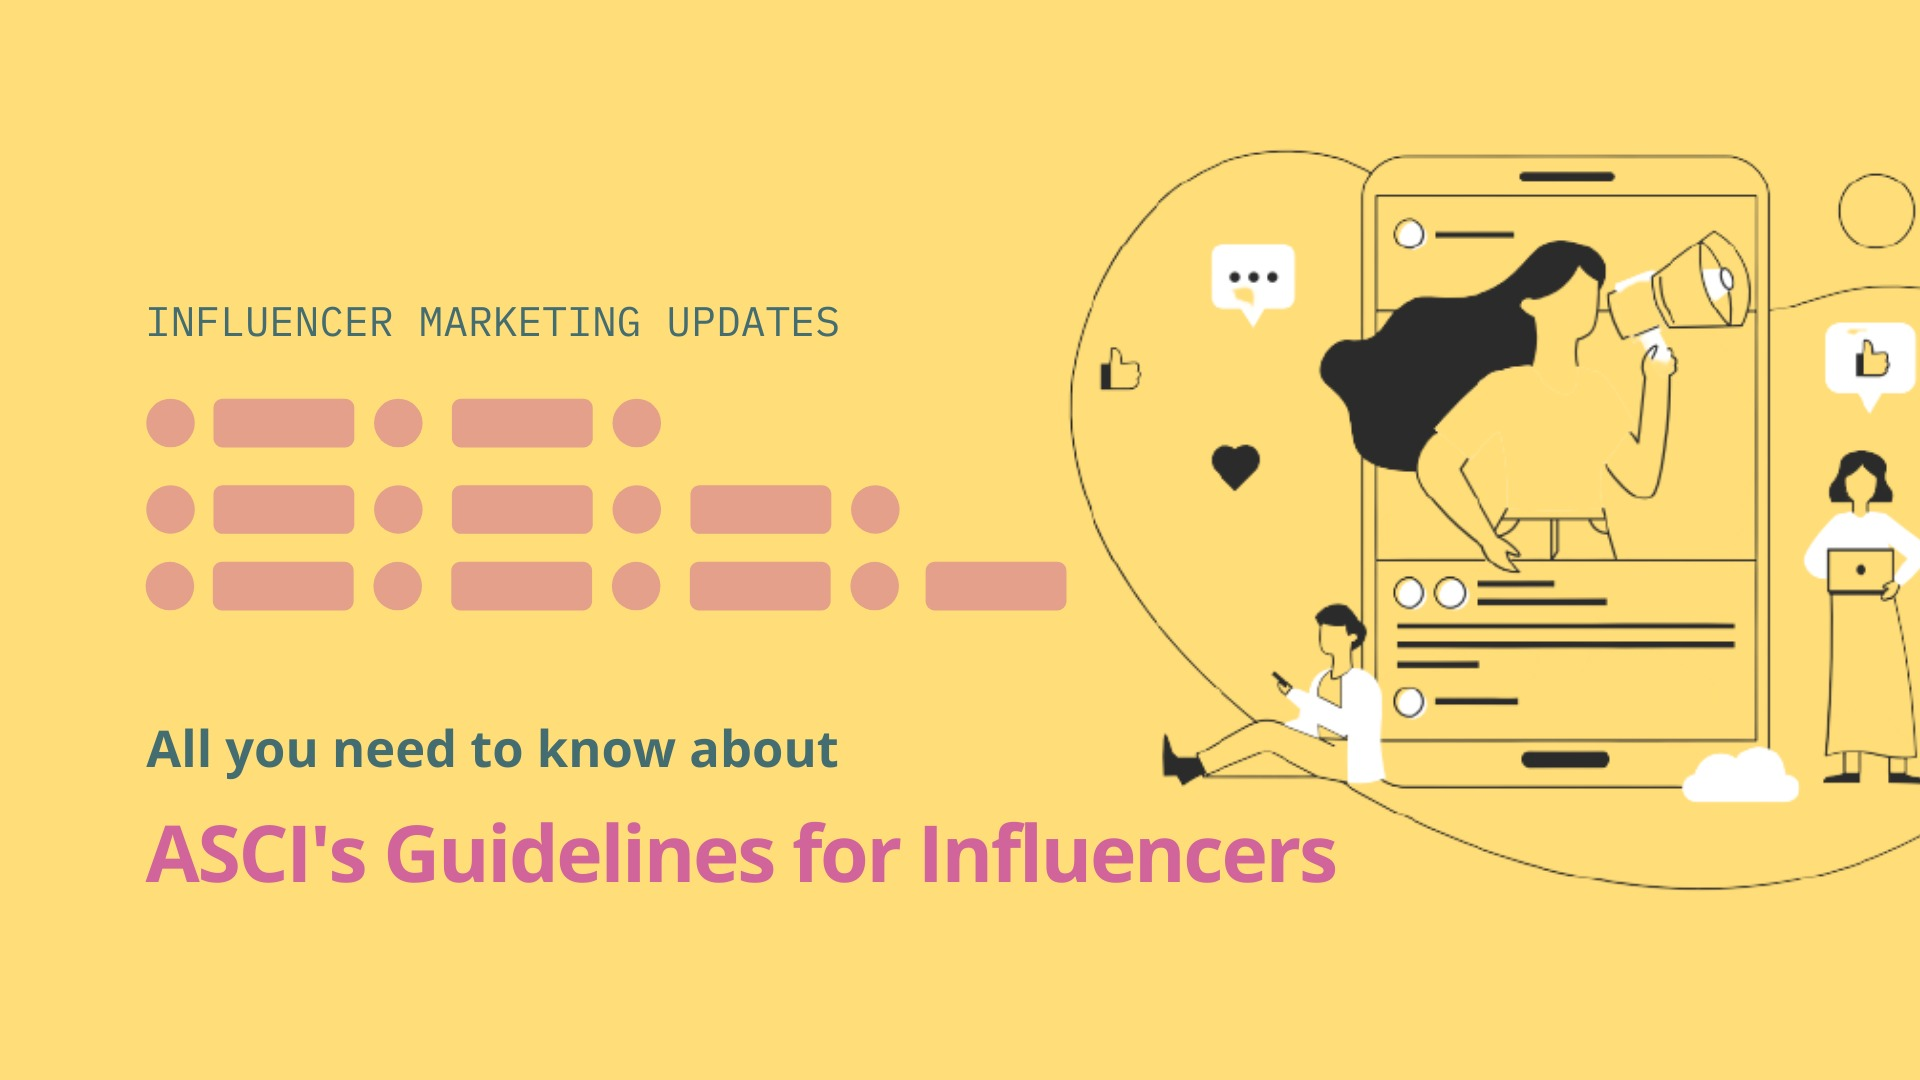 All you need to know about ASCI's guidelines for influencers image